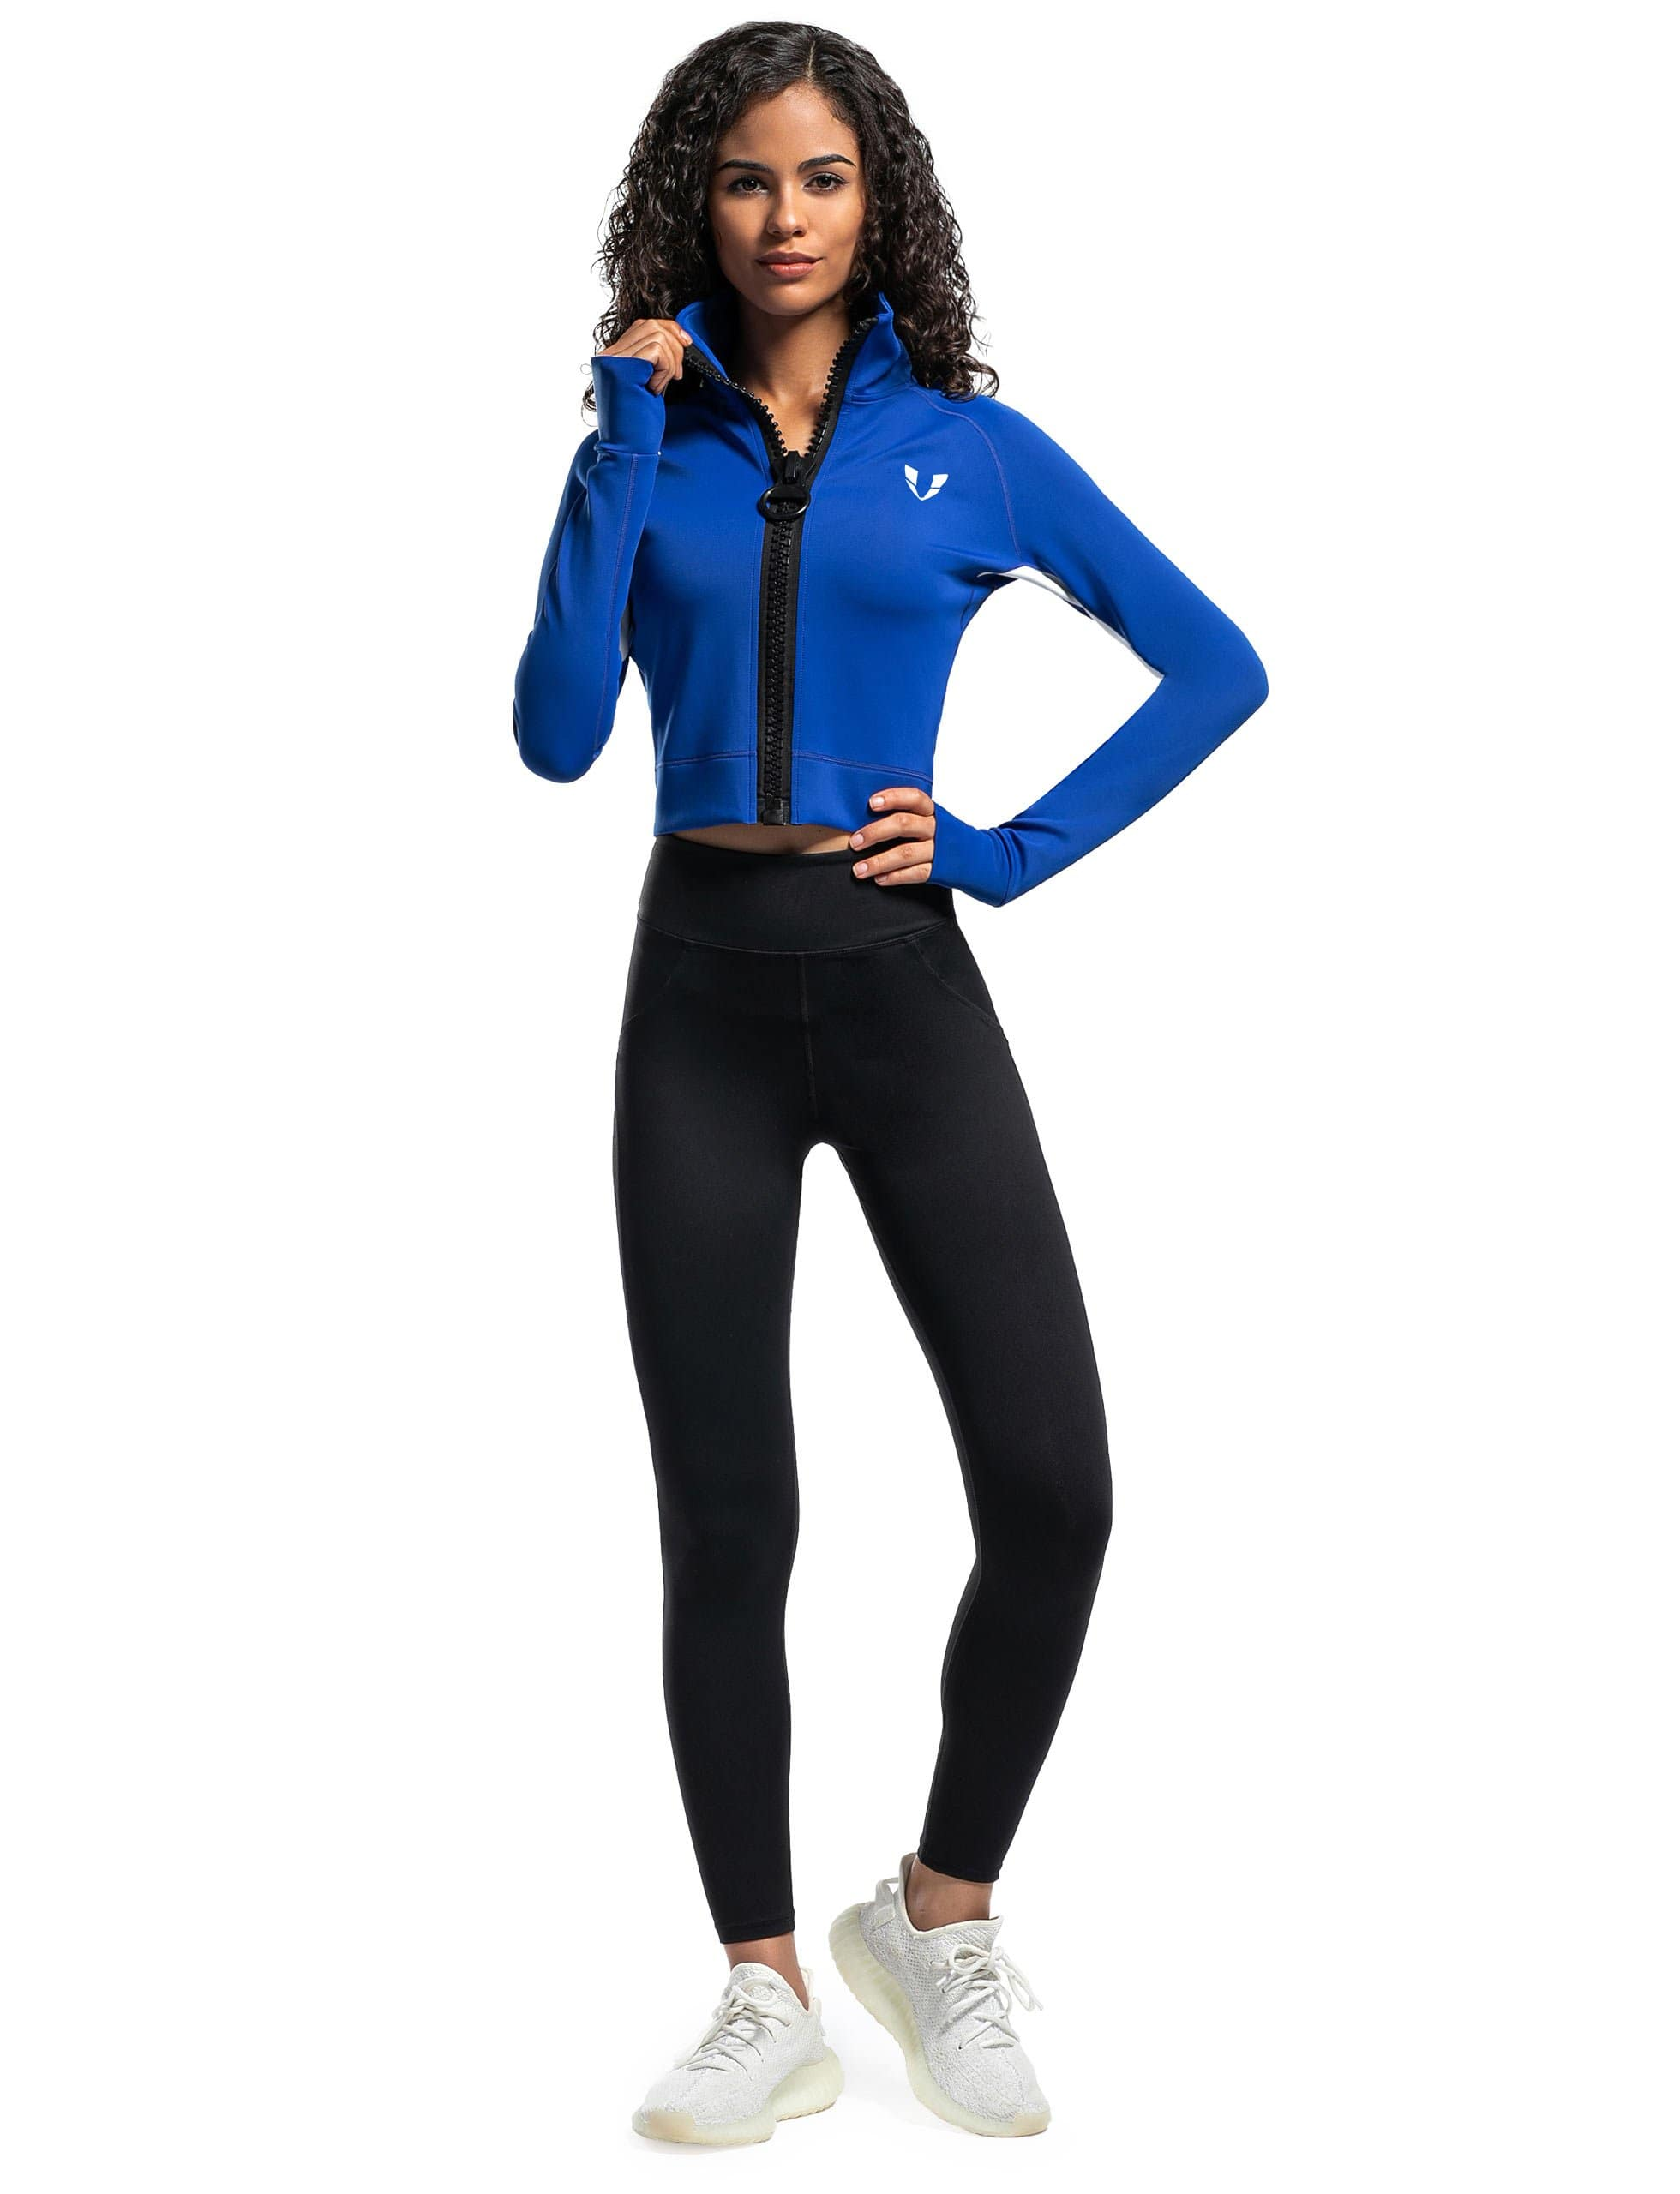 Vitality Jacket - Firm Abs Fitness